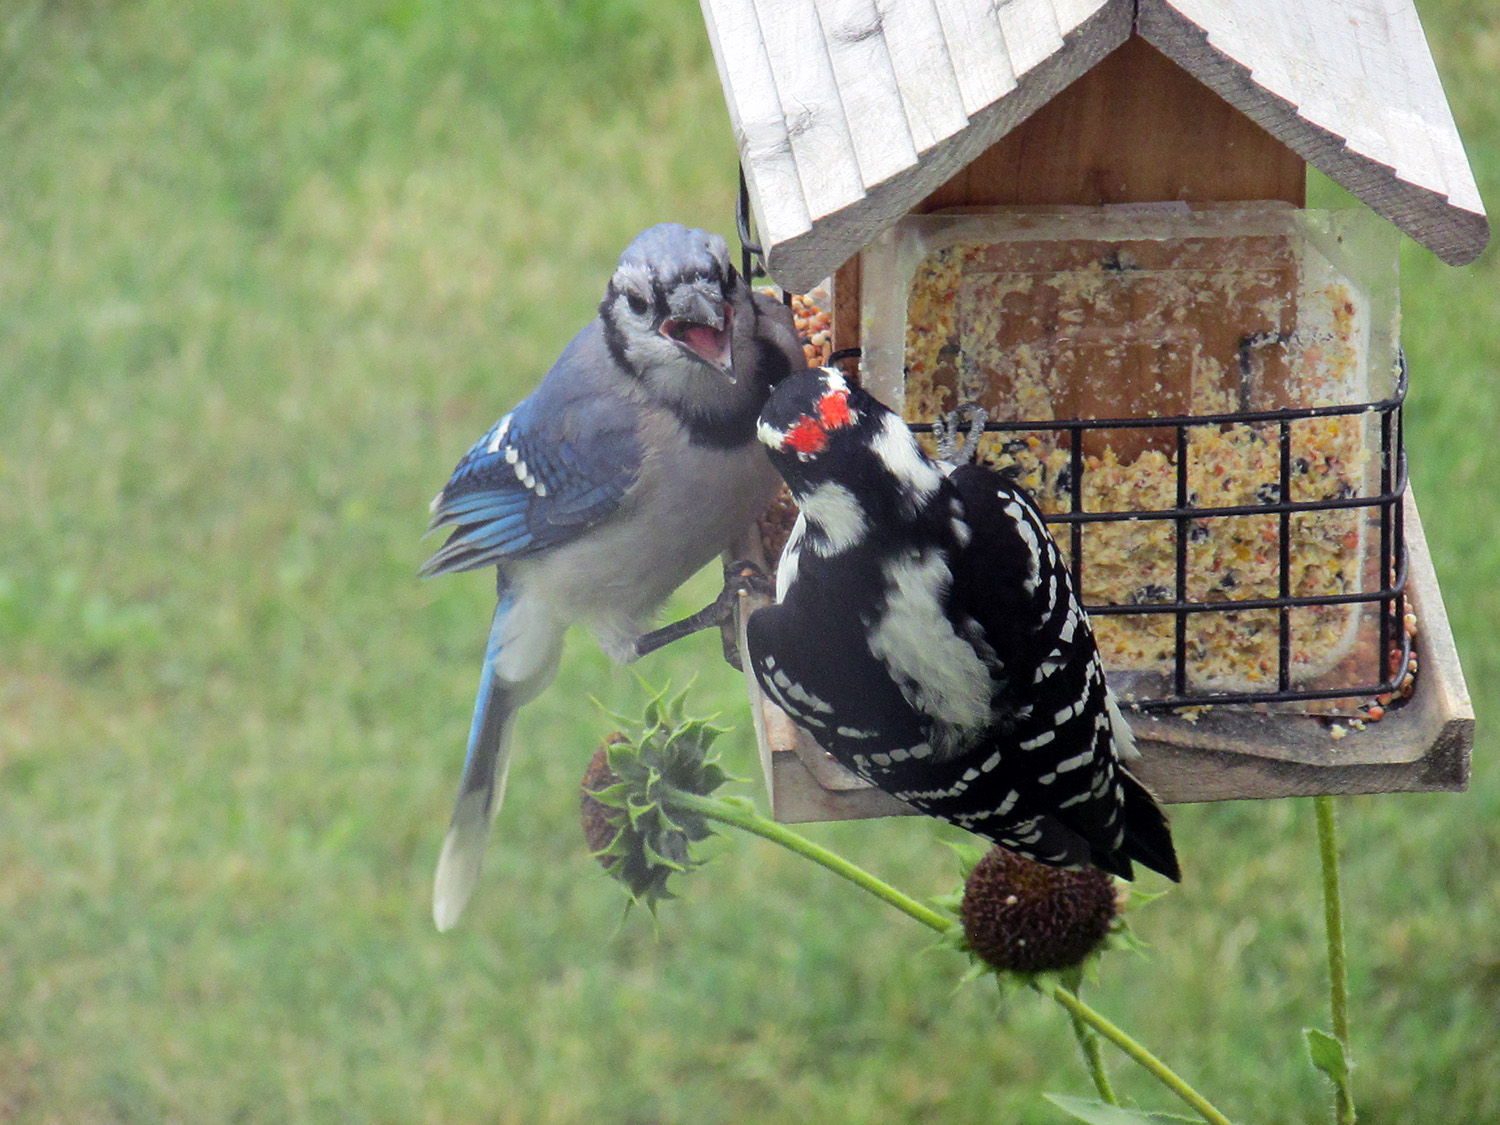 Angry birds, this blue jay and woodpecker, as they vie for feeder space in the Mapleton yard of Presque Isle's Marla Longley's parents. Well, that woodpecker should be pecking at trees, shouldn't it?